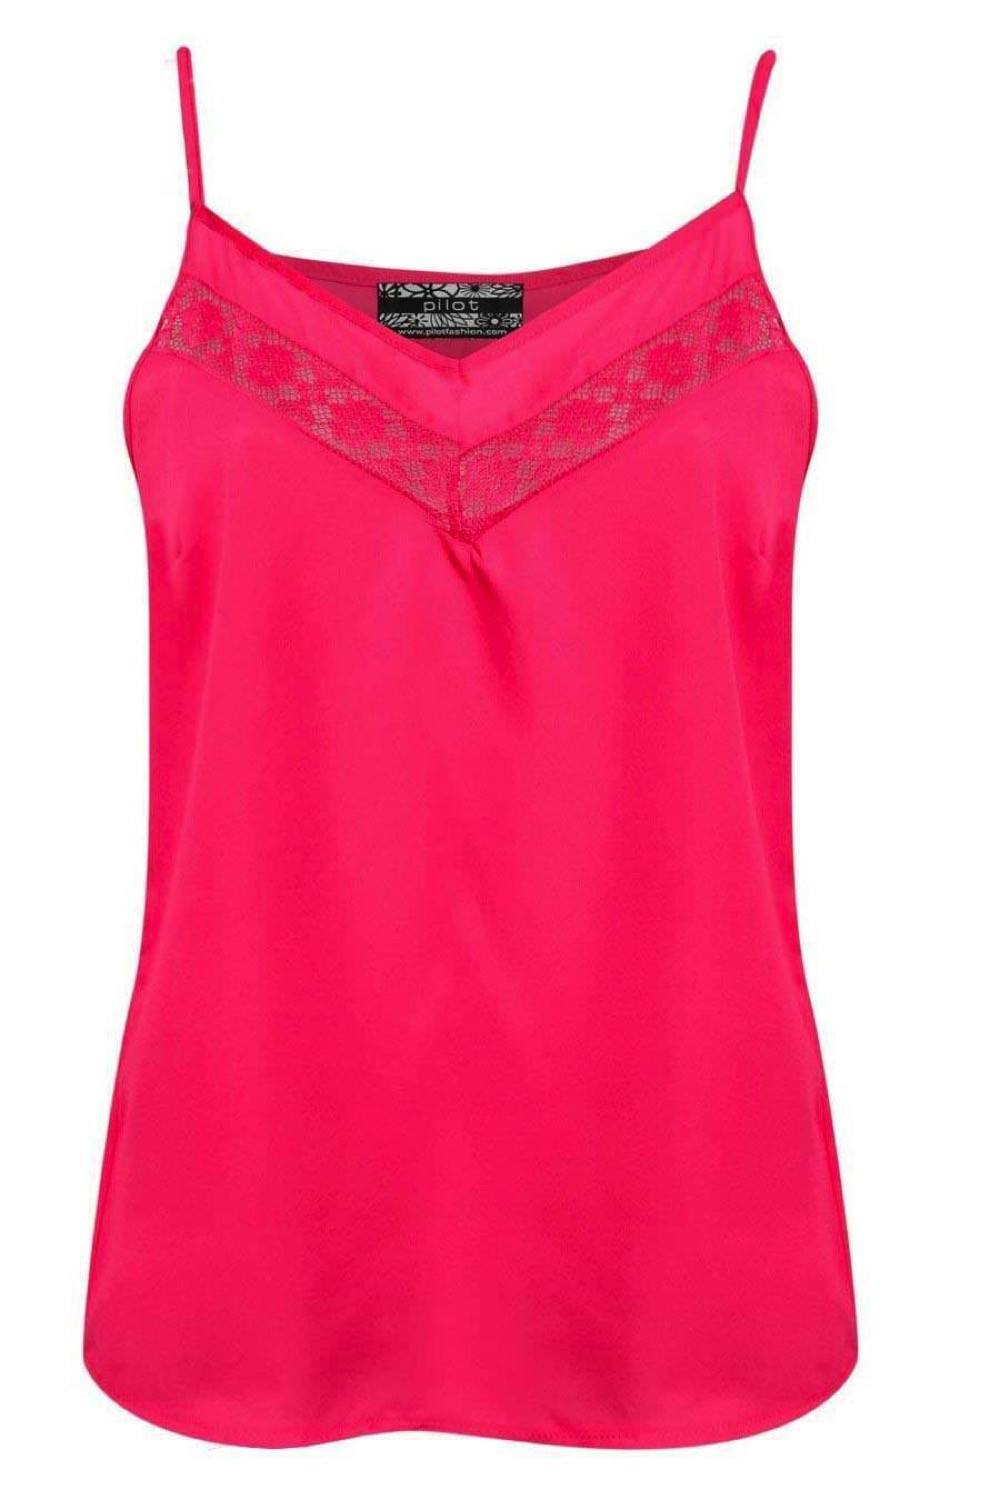 Lace Trim Cami Top in Fuchsia Pink FRONT